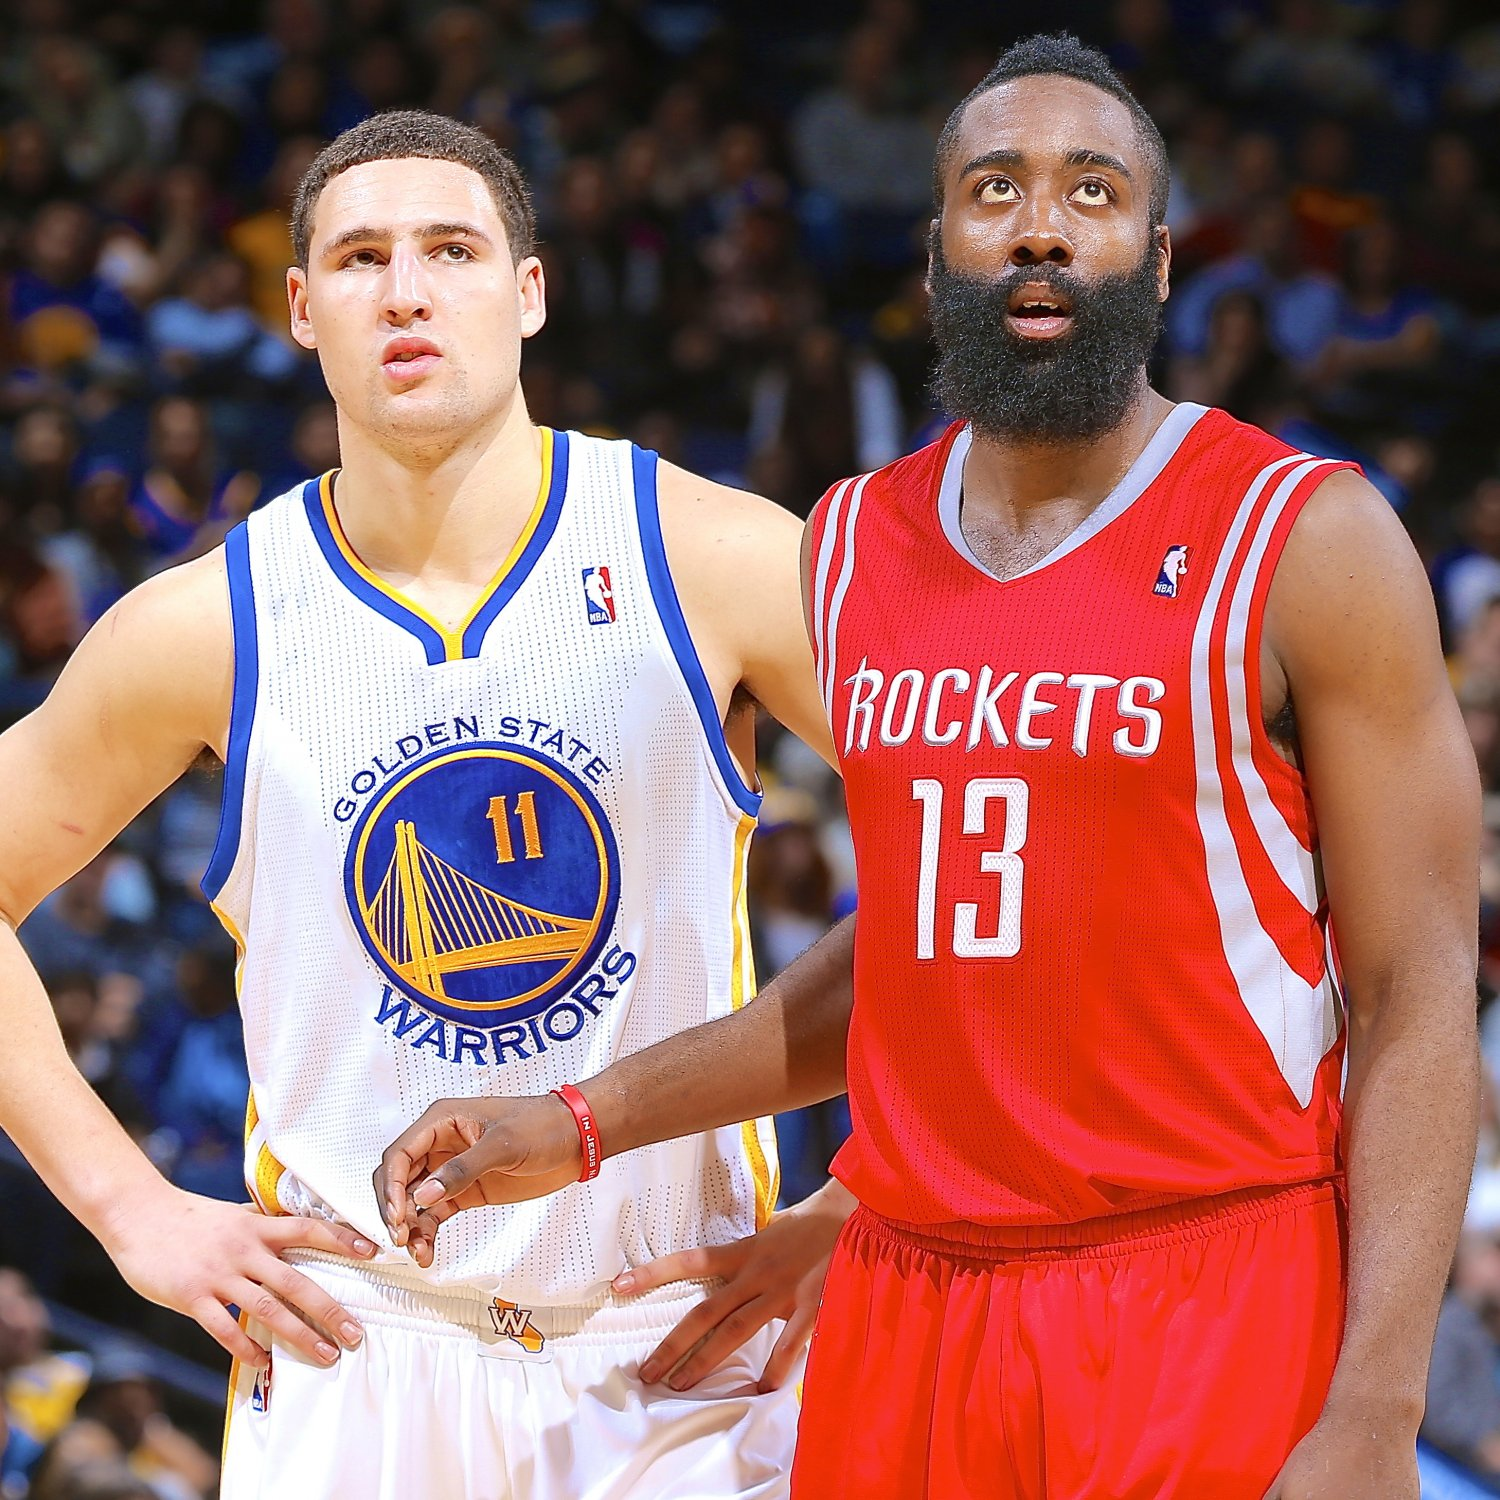 Rockets And The Warriors Game: Houston Rockets Vs. Golden State Warriors: Live Score And